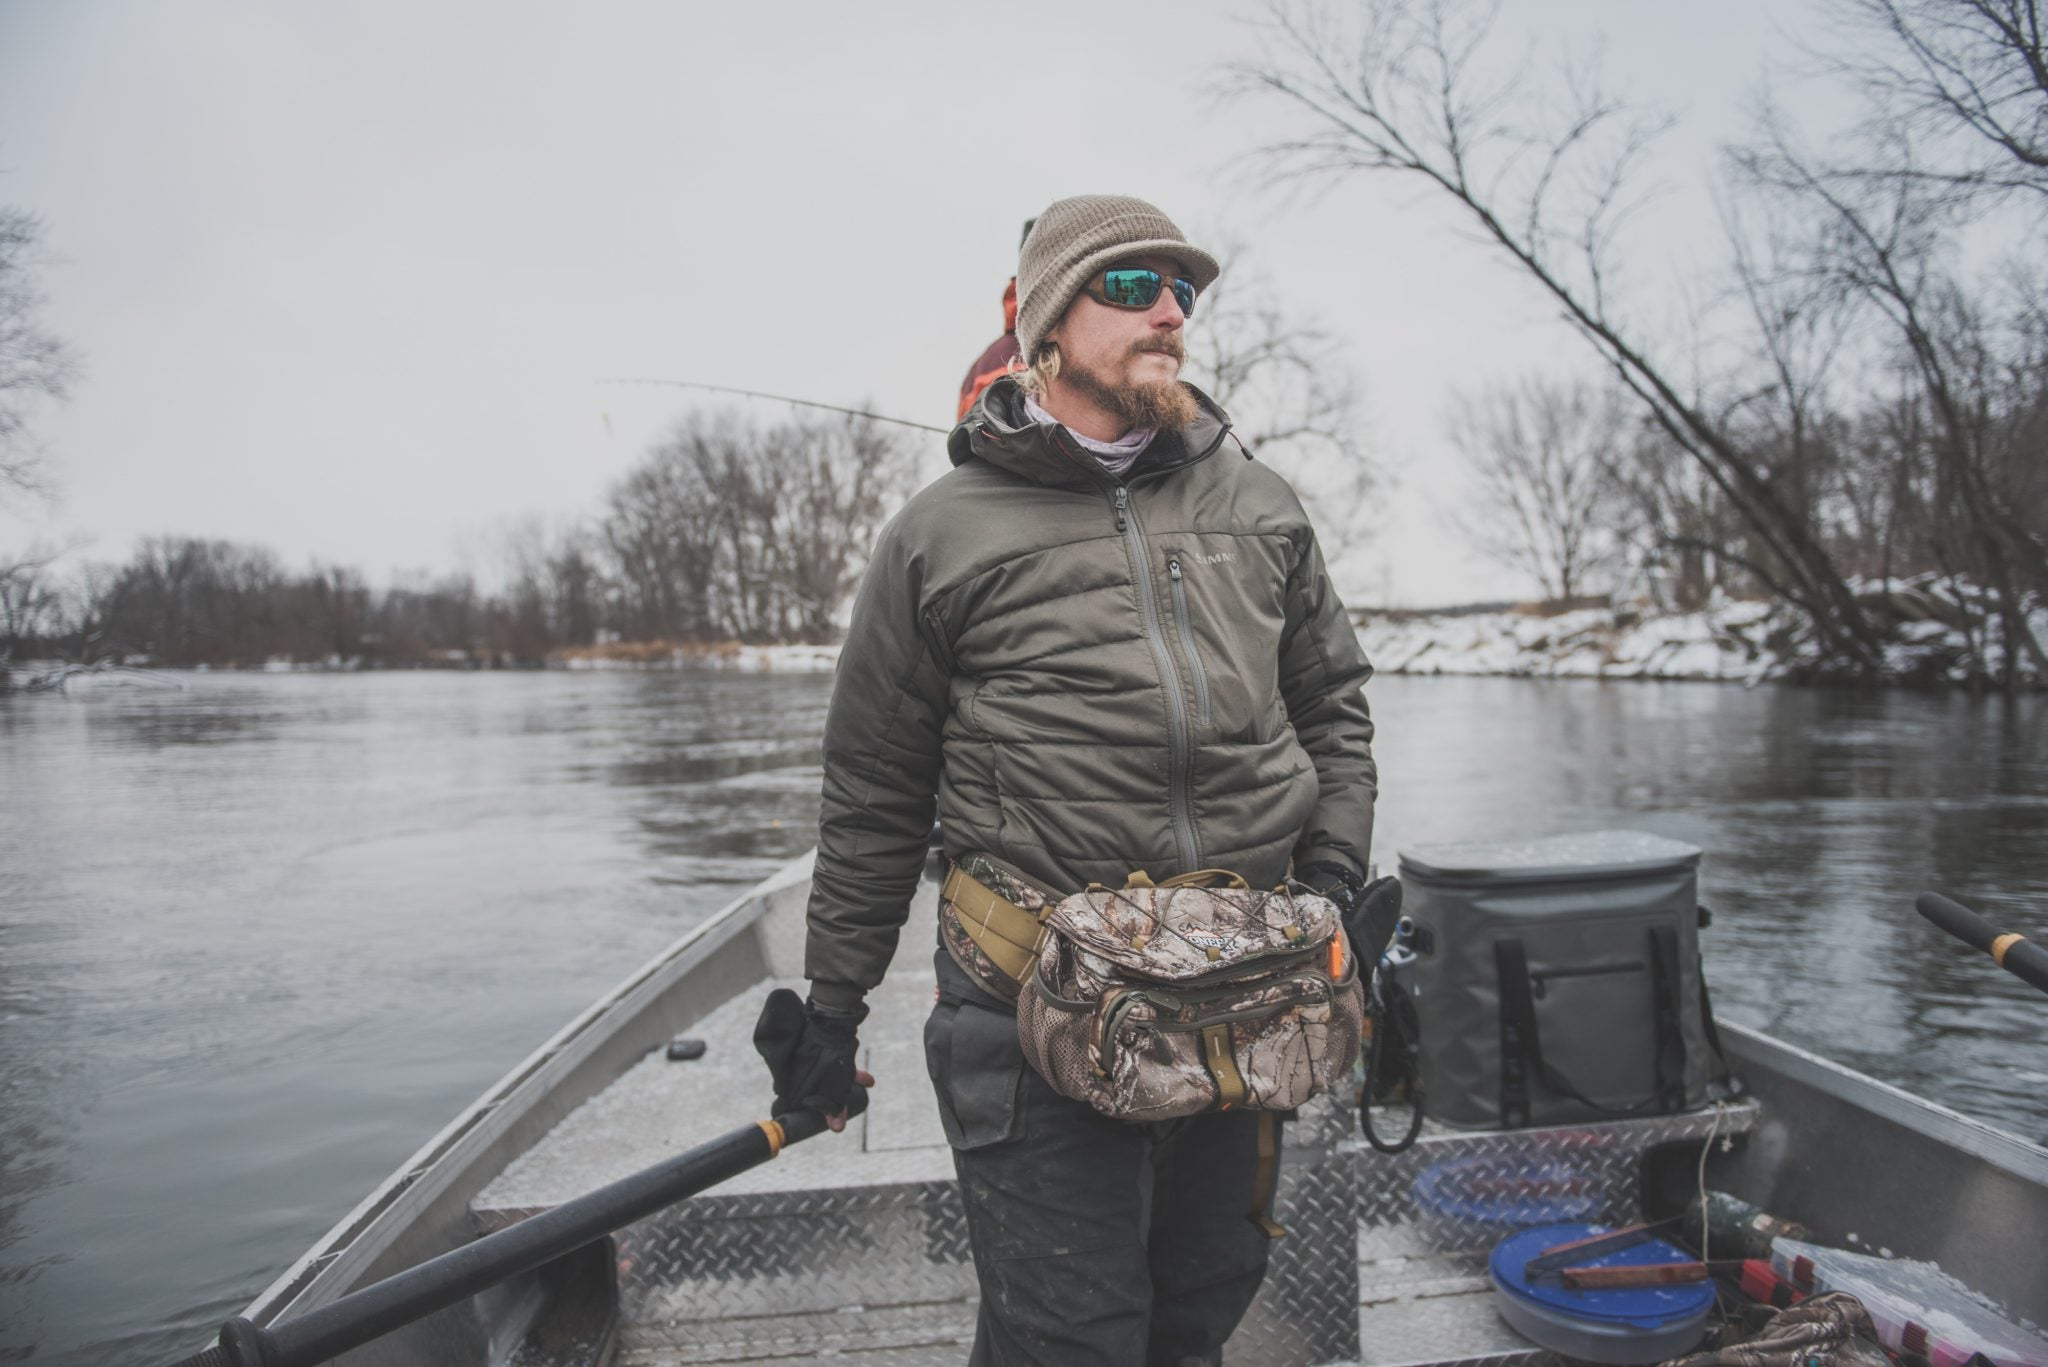 Michigan resident, and Fishing Guide, Brandyn Thorsen, with Great Lakes Guide Services, uses the Pioneer 400RT series waist pack, while guiding a Steelhead trip on the Muskegon River in Michigan. The Pioneer 400RT is perfect for cold weather as it doubles as a hand warmer.